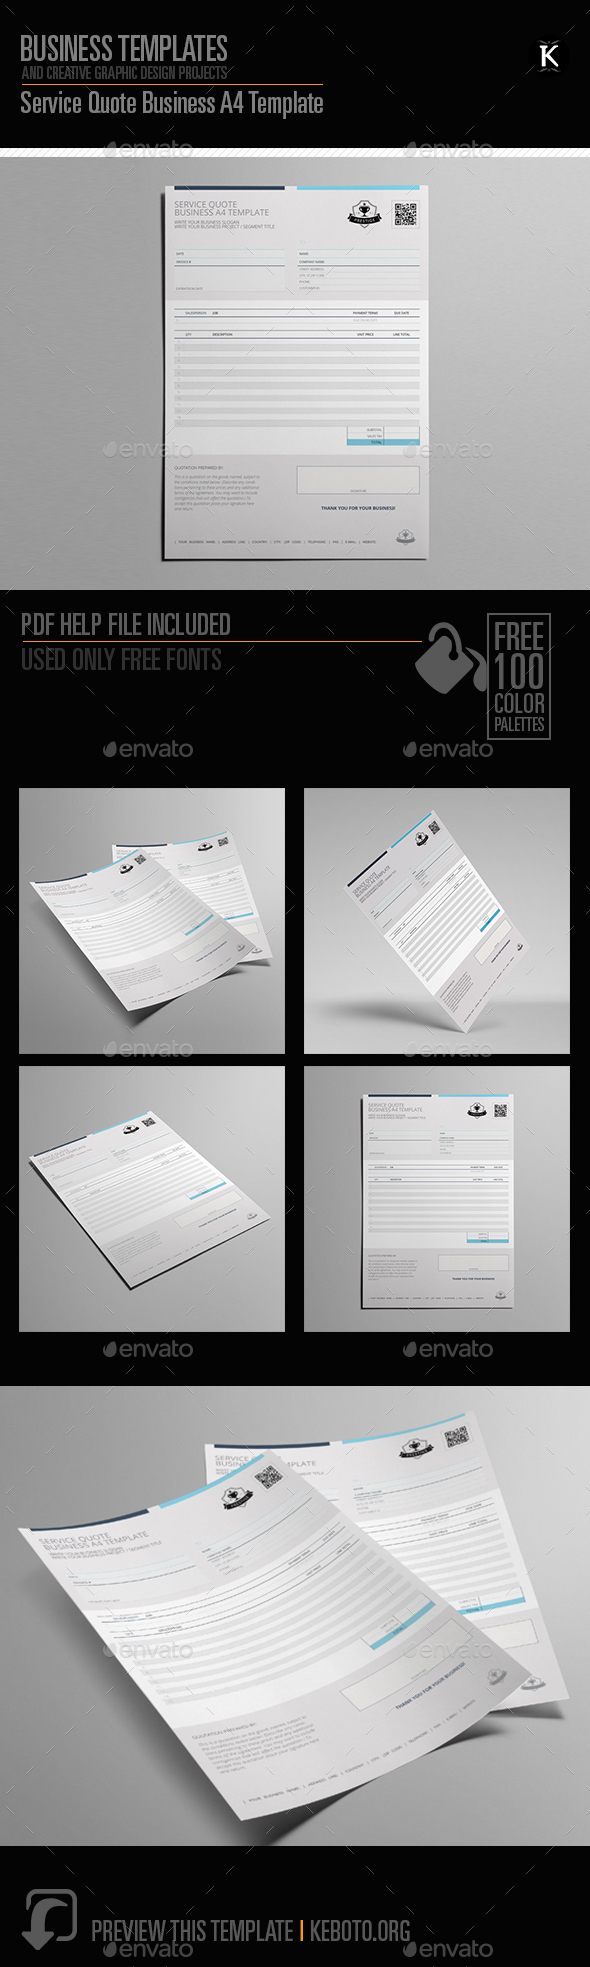 Service Quote Business A4 Template - Miscellaneous Print Templates